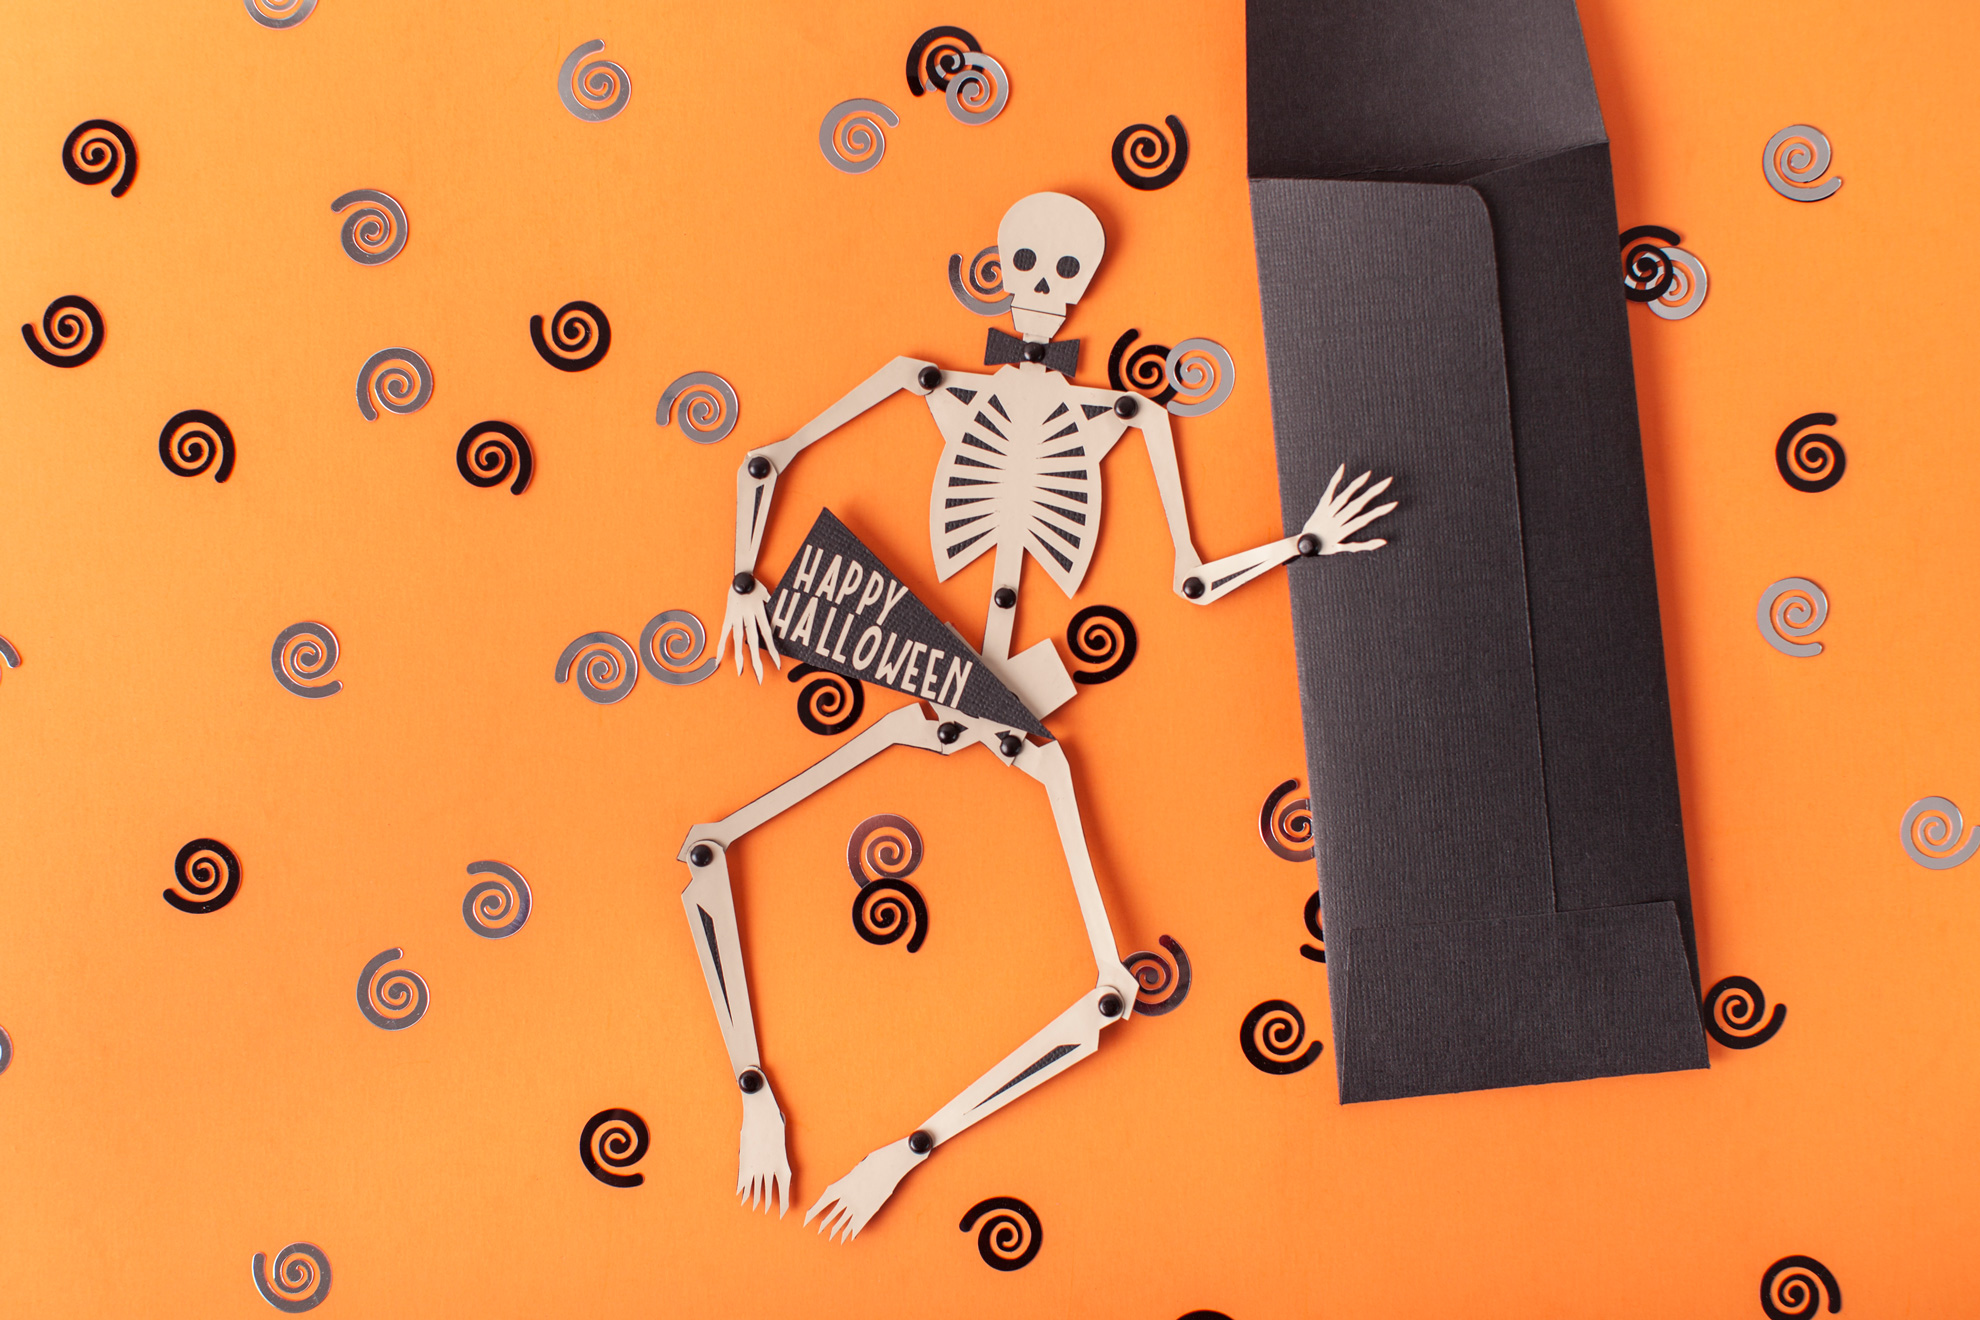 Paper skeleton and decorations on an orange background